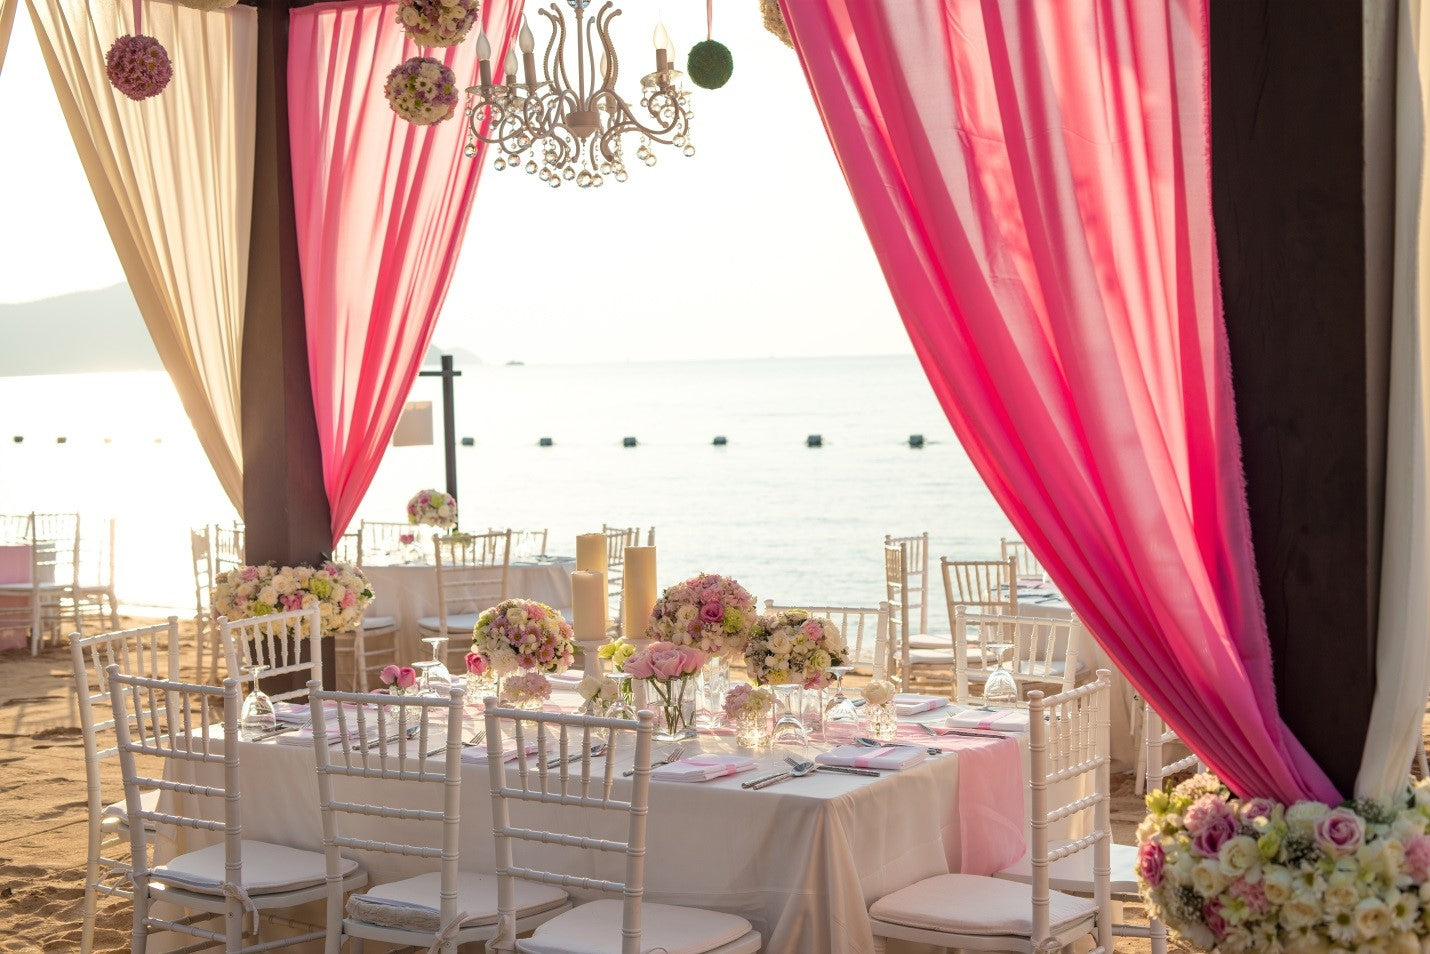 white tablecloths with pink table runner